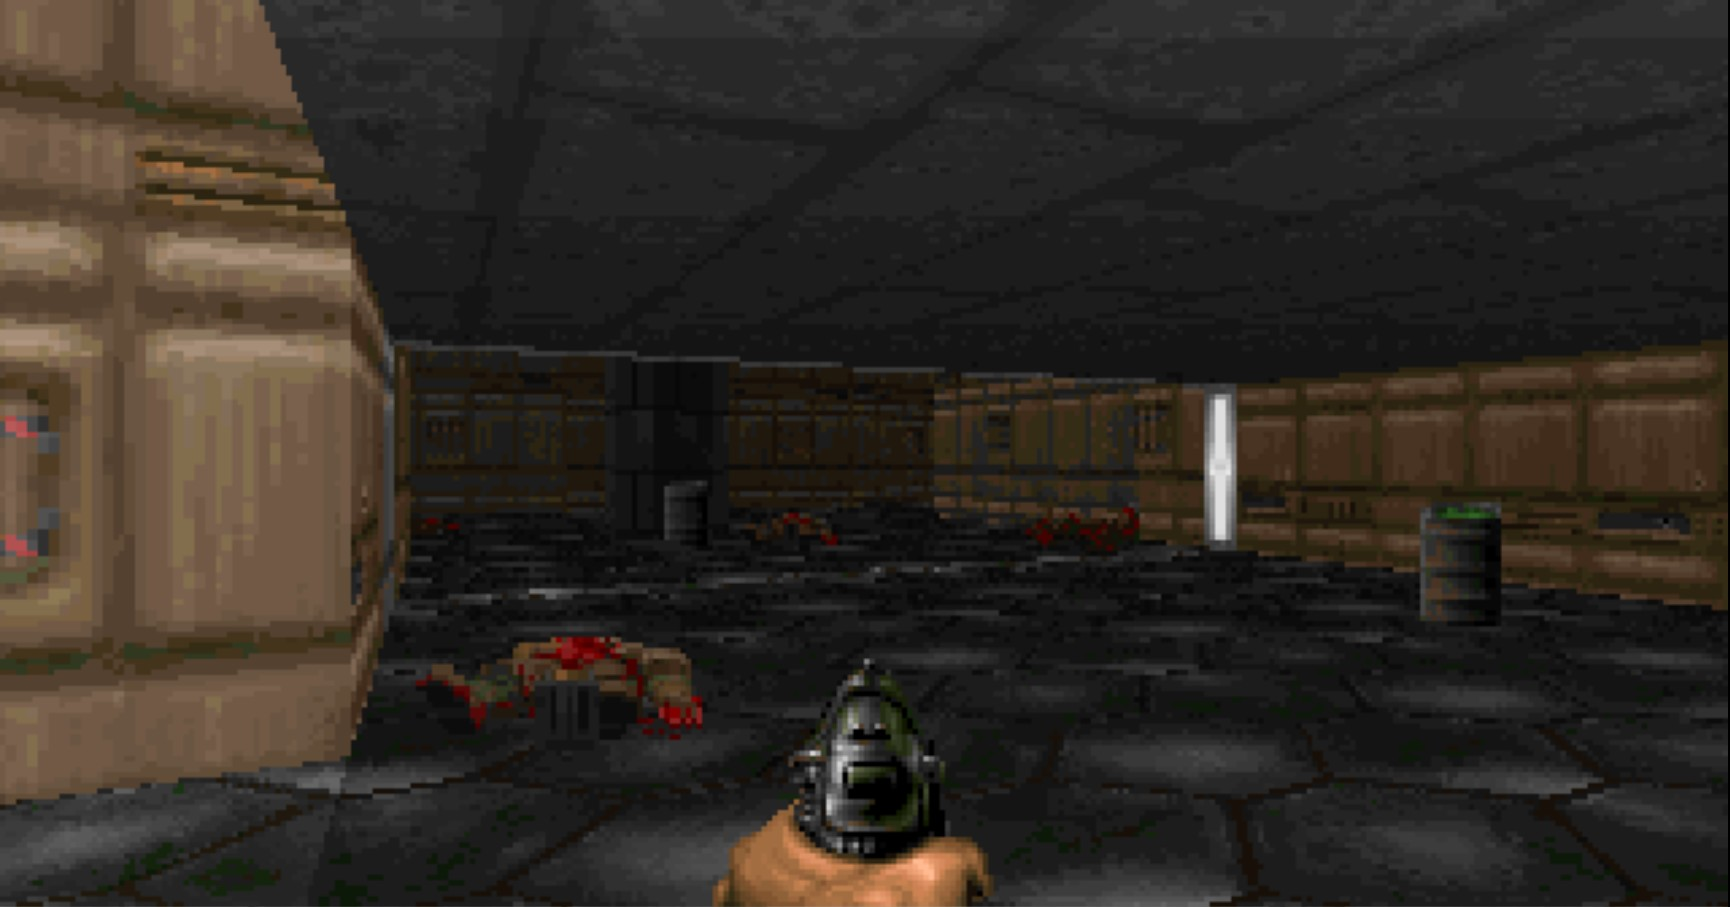 The Ultimate Doom screenshot